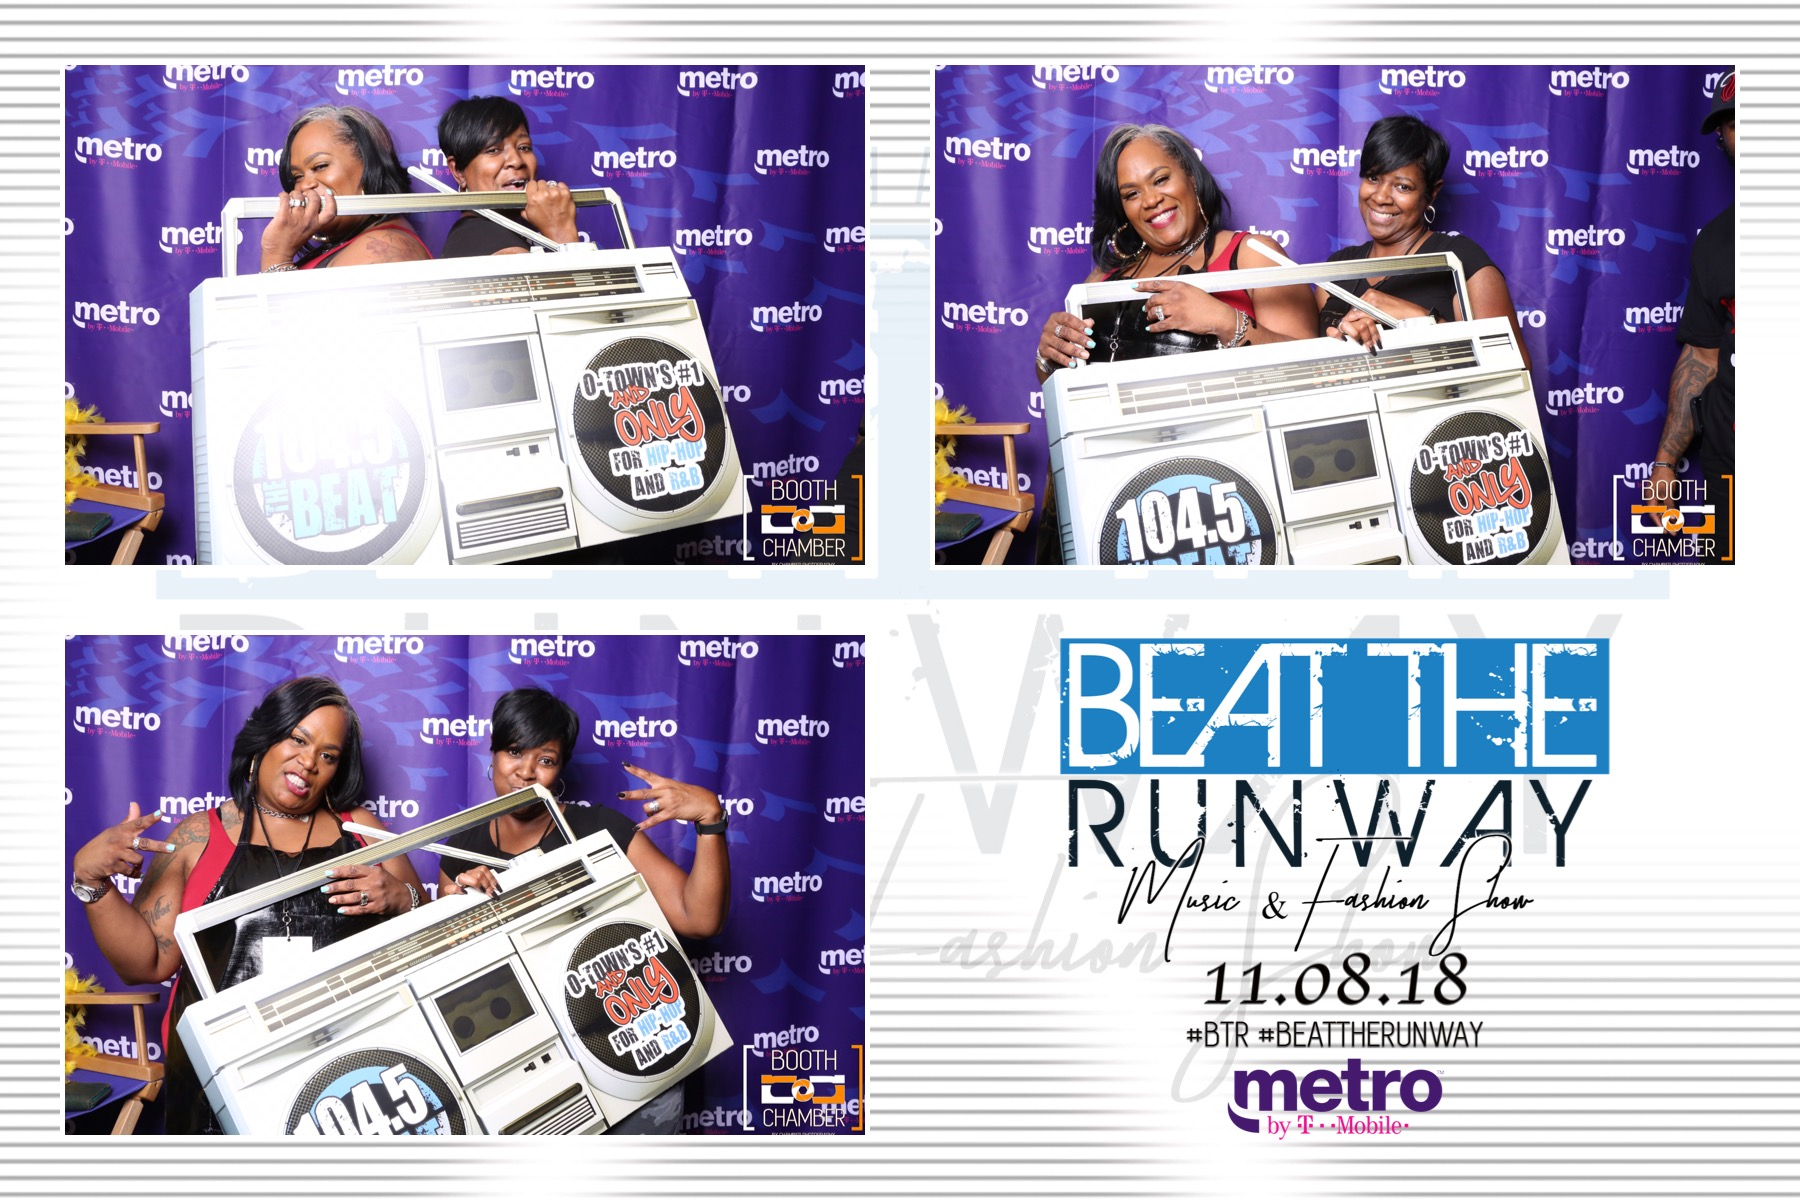 Booth Chamber Photo Booth Beat the Runway Antoine Hart 20181108_2 (1).jpeg